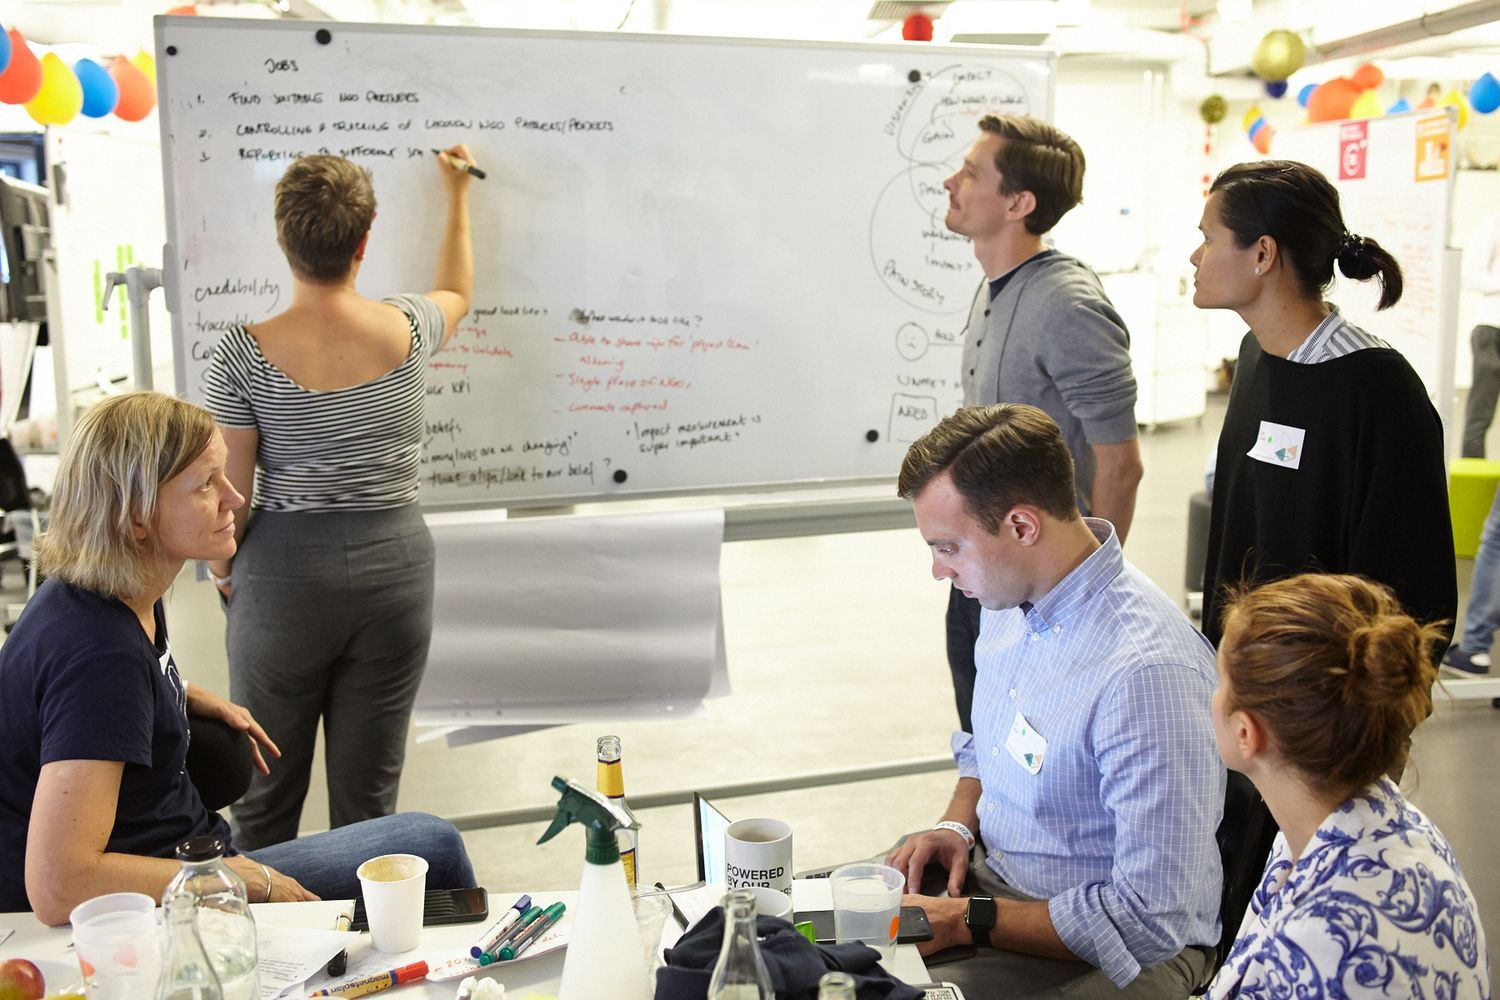 team working together at a whiteboard